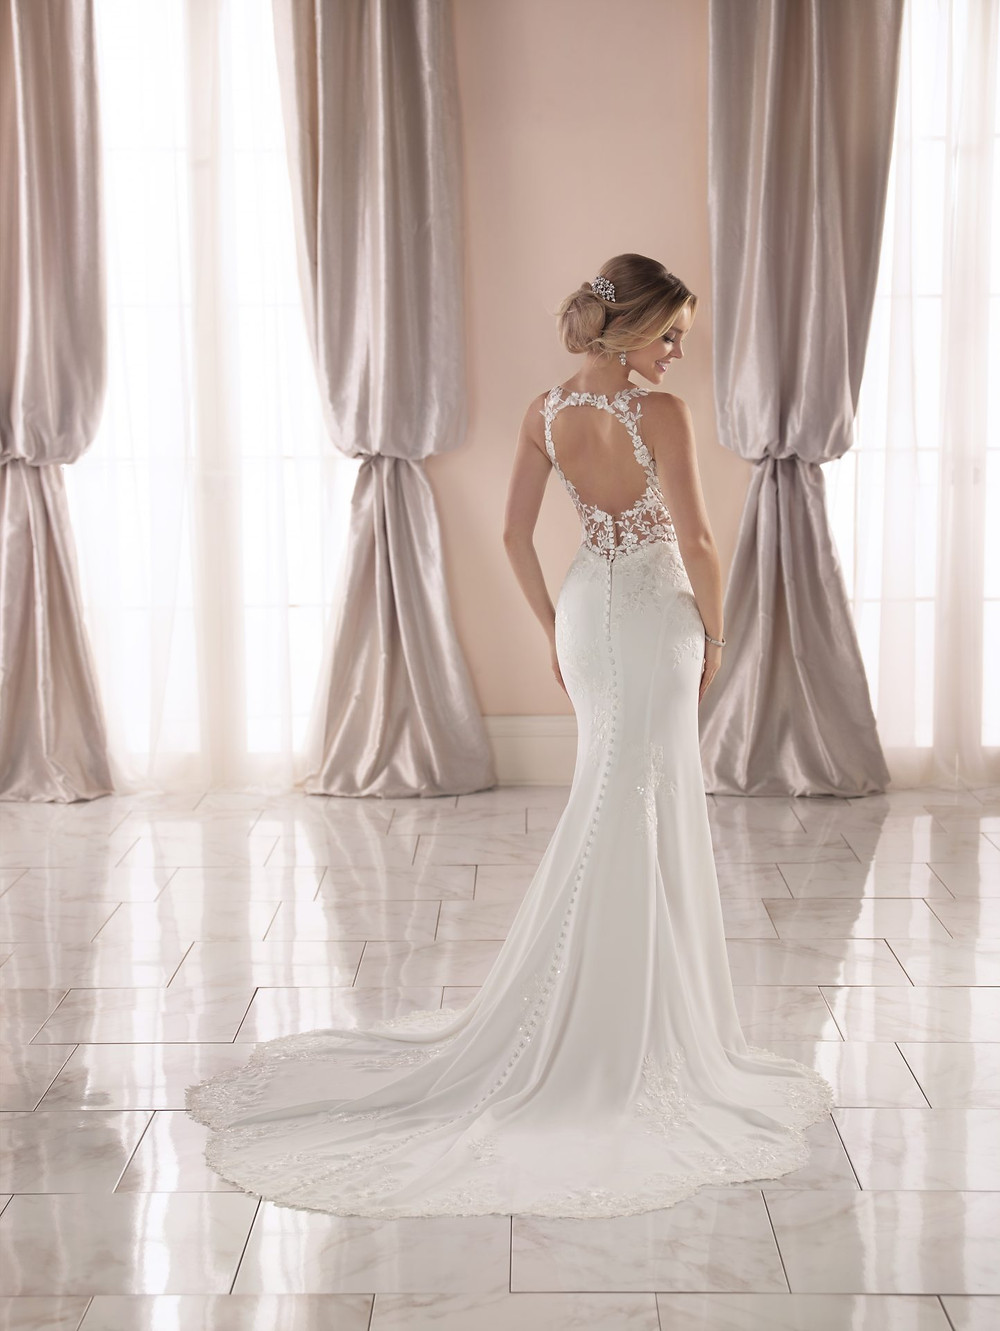 Style 6916 by Stella York. Wedding dress suggestion for athletic body type bride. Backless slim fit lace gown.